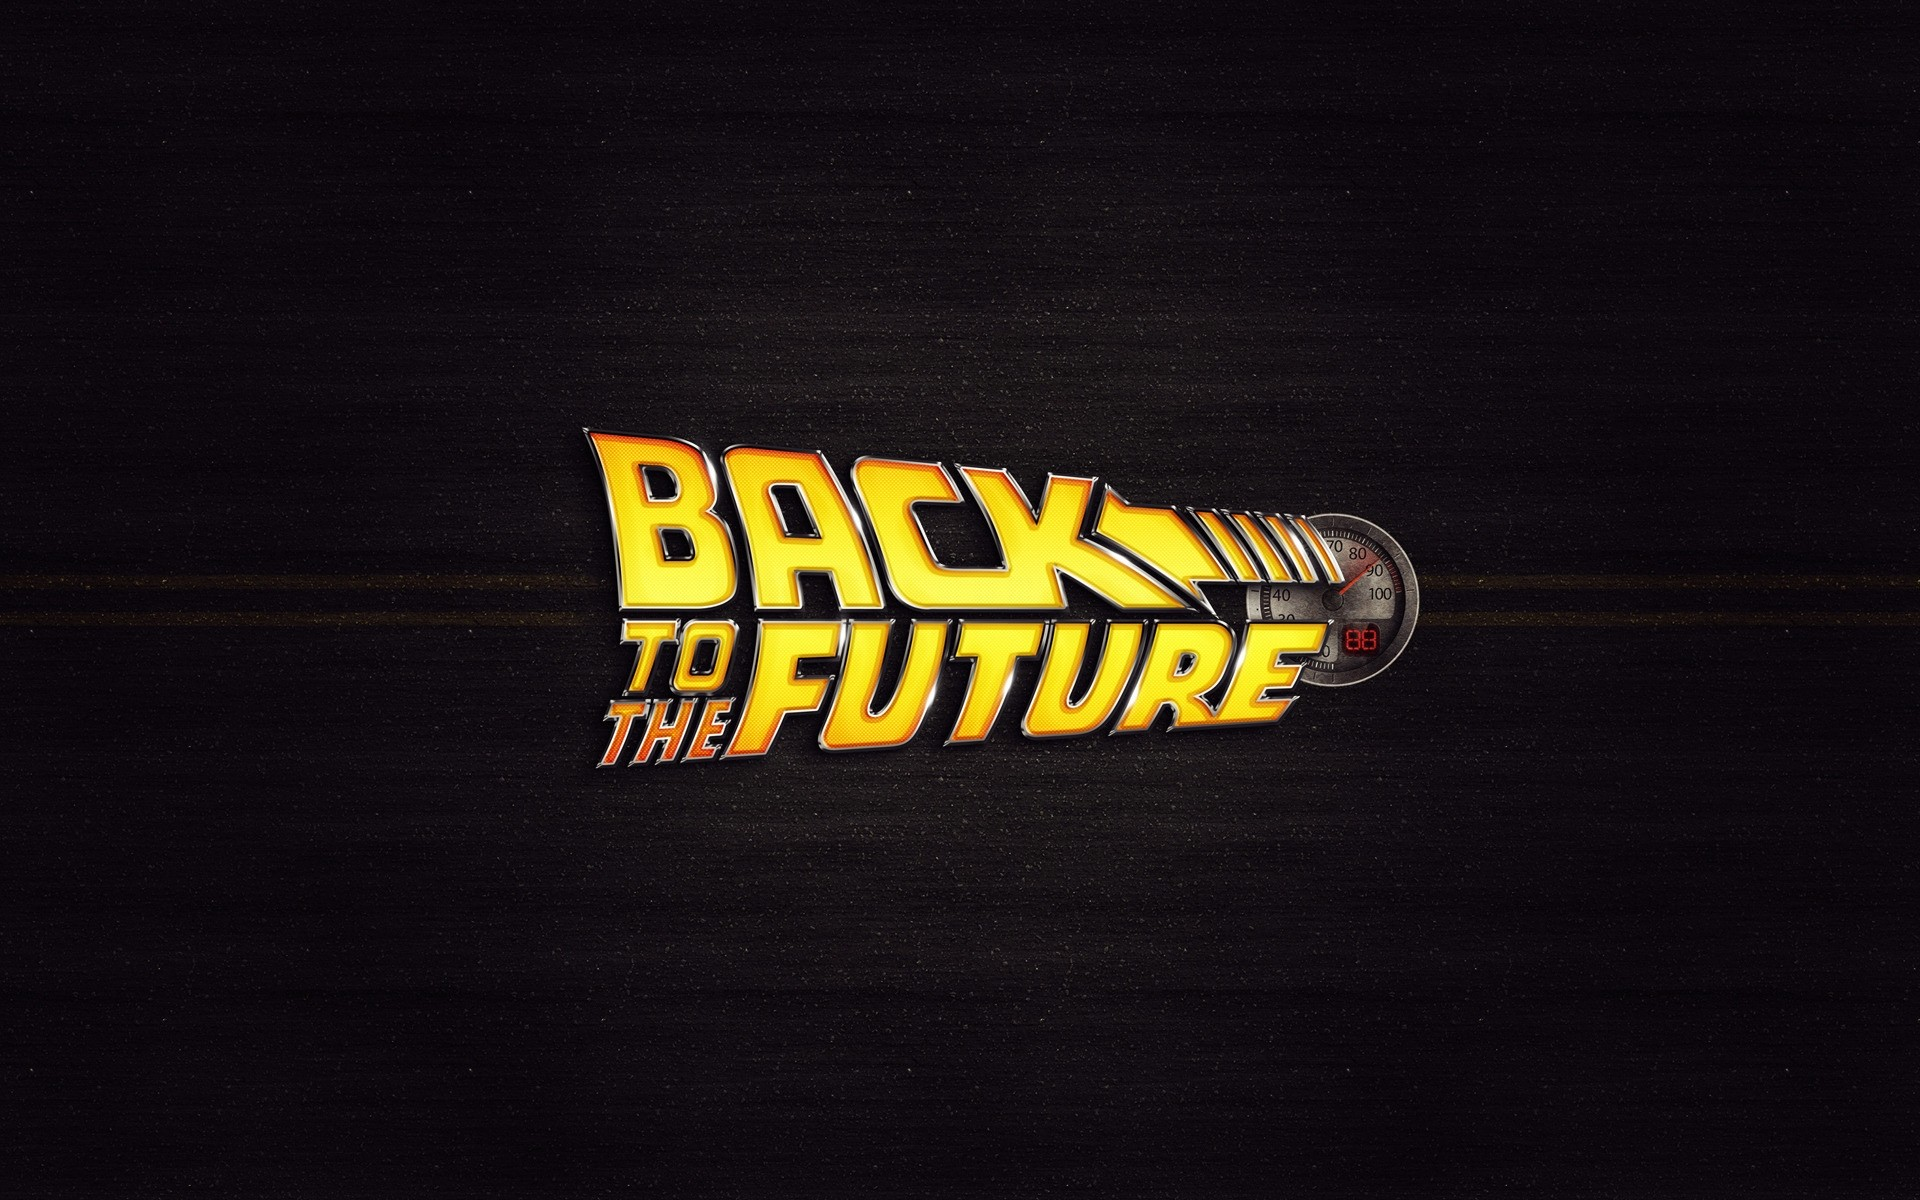 Zendha Back To The Future Iphone Wallpaper